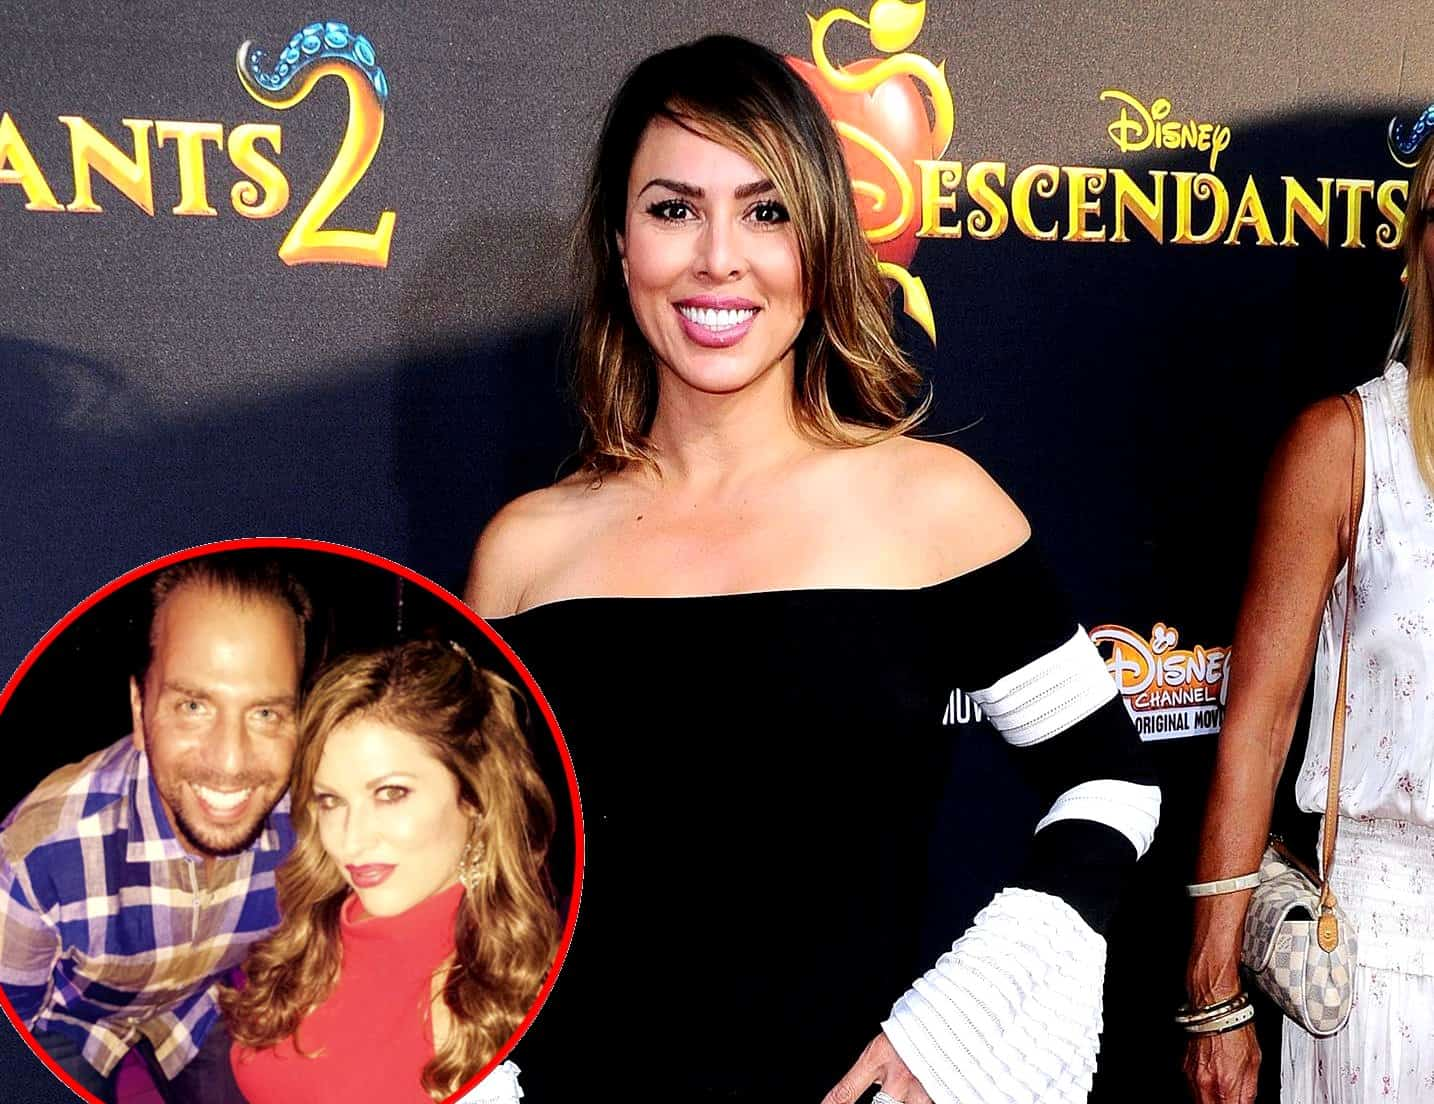 RHOC Kelly Dodd slams Shane and Emily Simpson